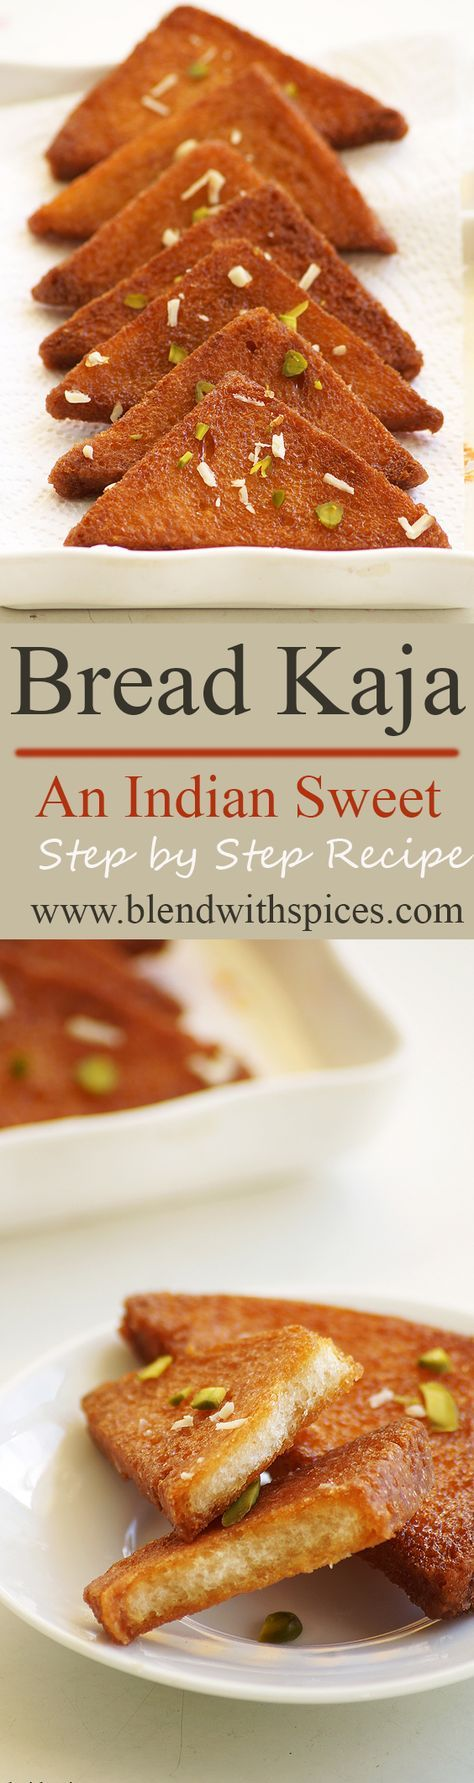 Bread Kaja - Crispy Fried Bread in Sugar Syrup!.. An easy and super quick Indian dessert recipe with step by step photos. blendwithspices.com